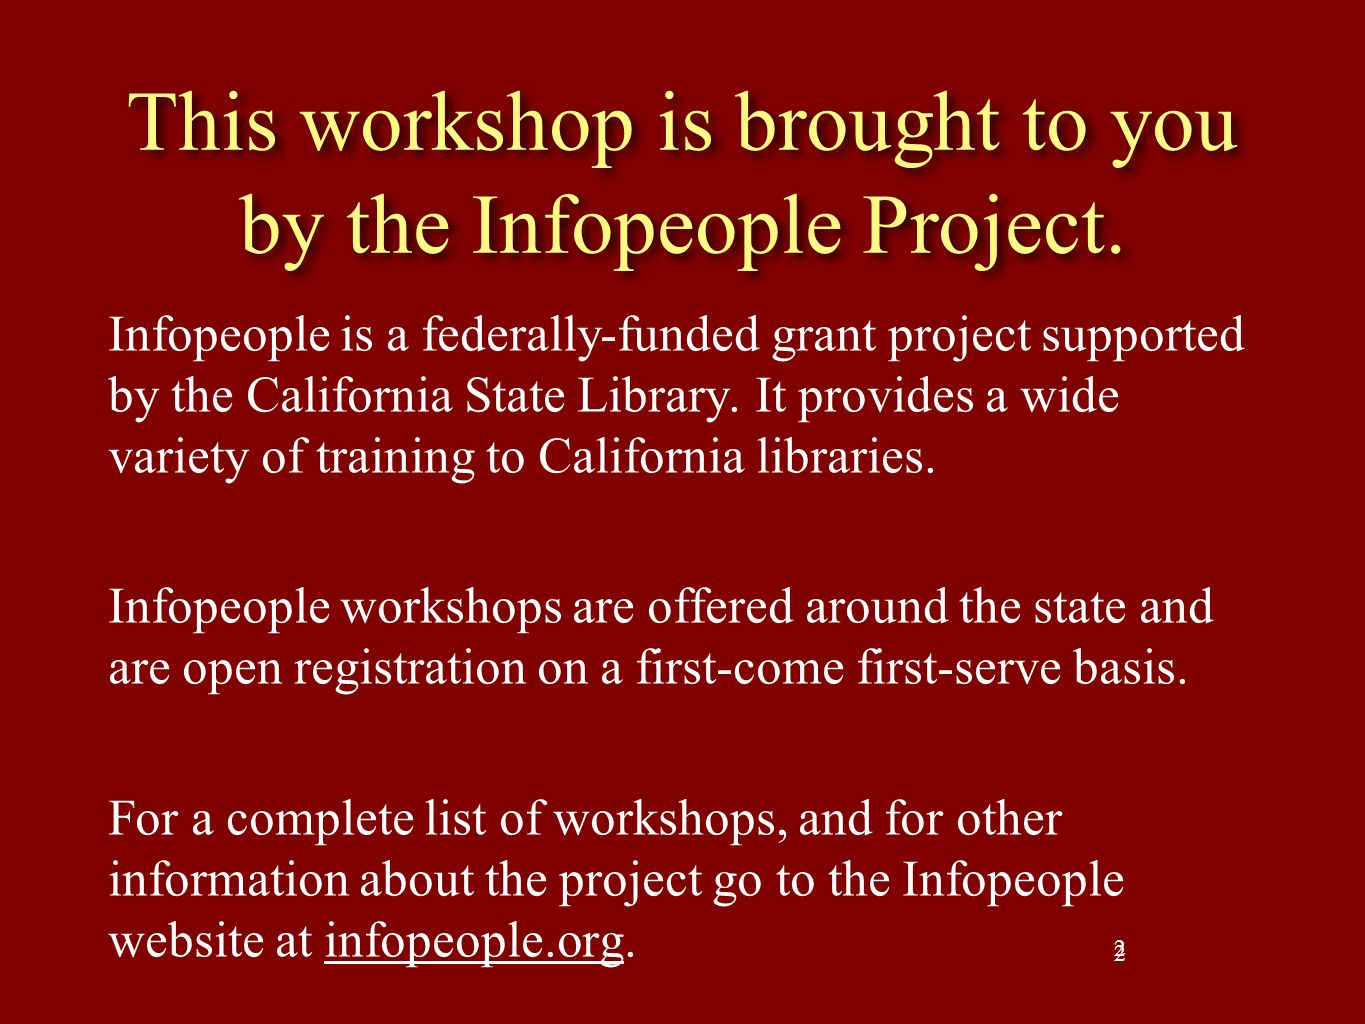 This workshop is brought to you by the Infopeople Project.